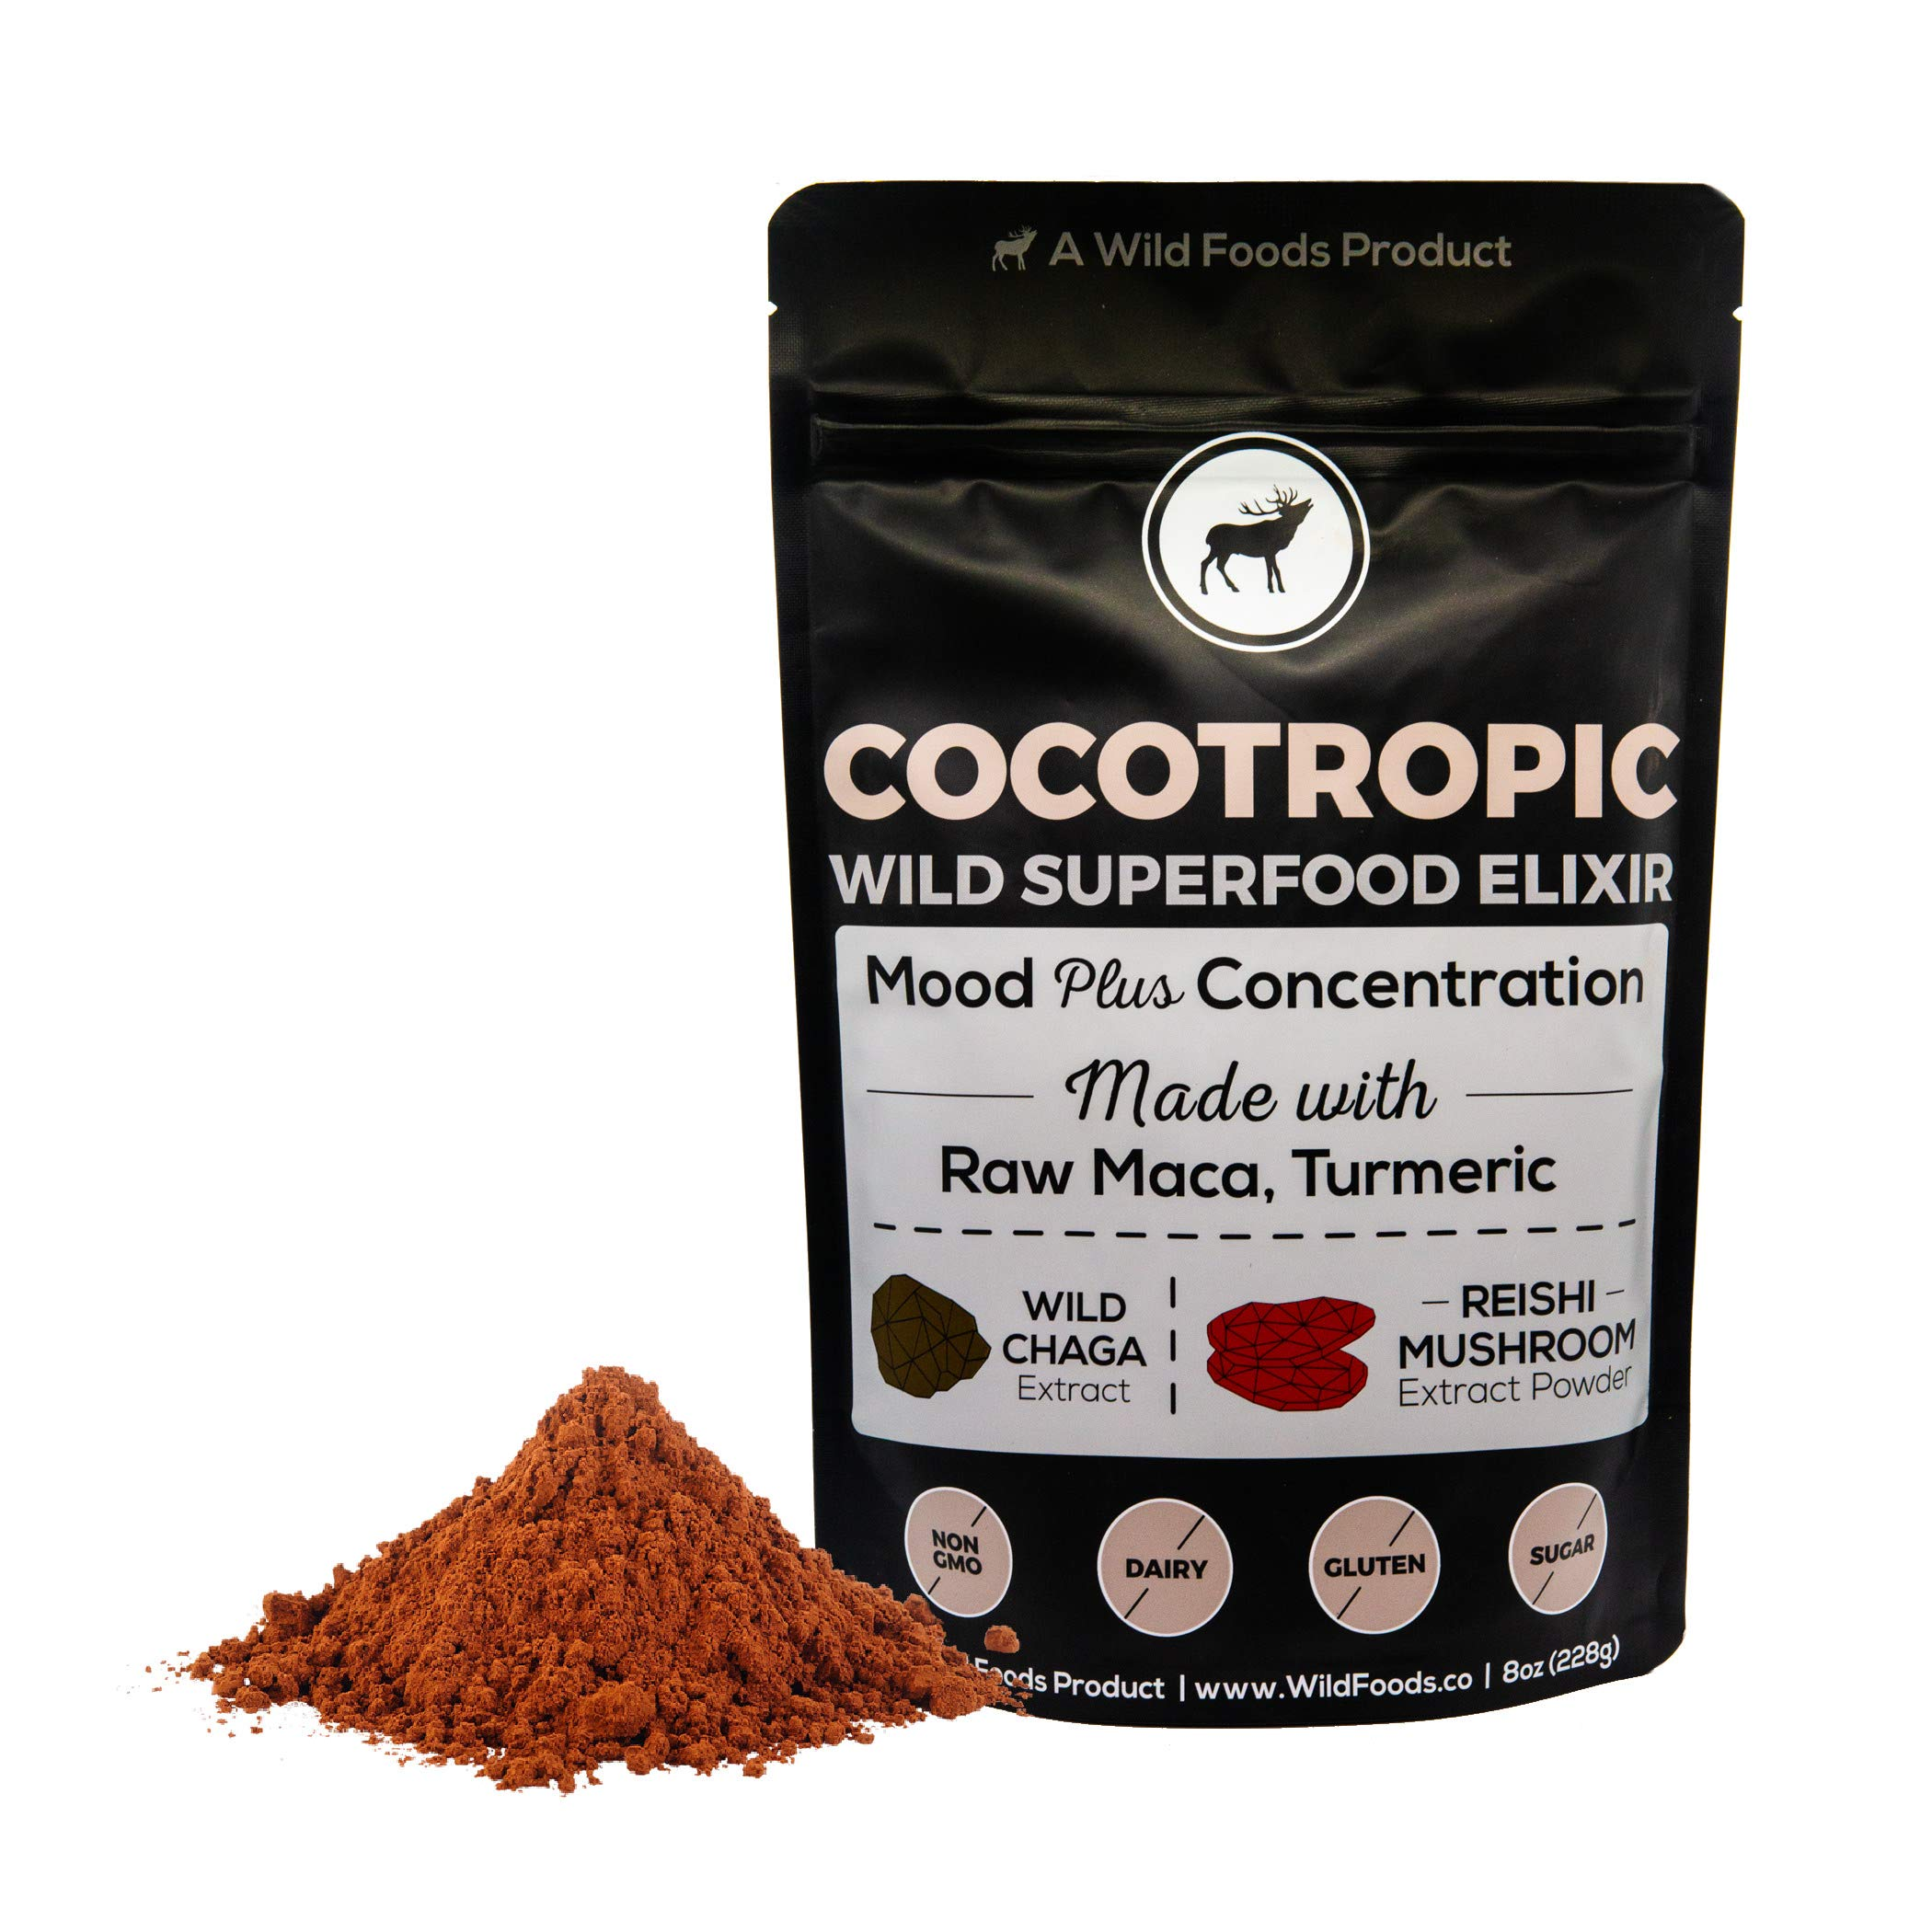 Wild Cocotropic Raw Cacao with Reishi Mushroom, Chaga Extract, Raw Maca and Turmeric, Cognitive Enhancing Hot Cocoa Beverage, Nootropic Powder for Smoothies, Shakes, Coffee (8 ounce)